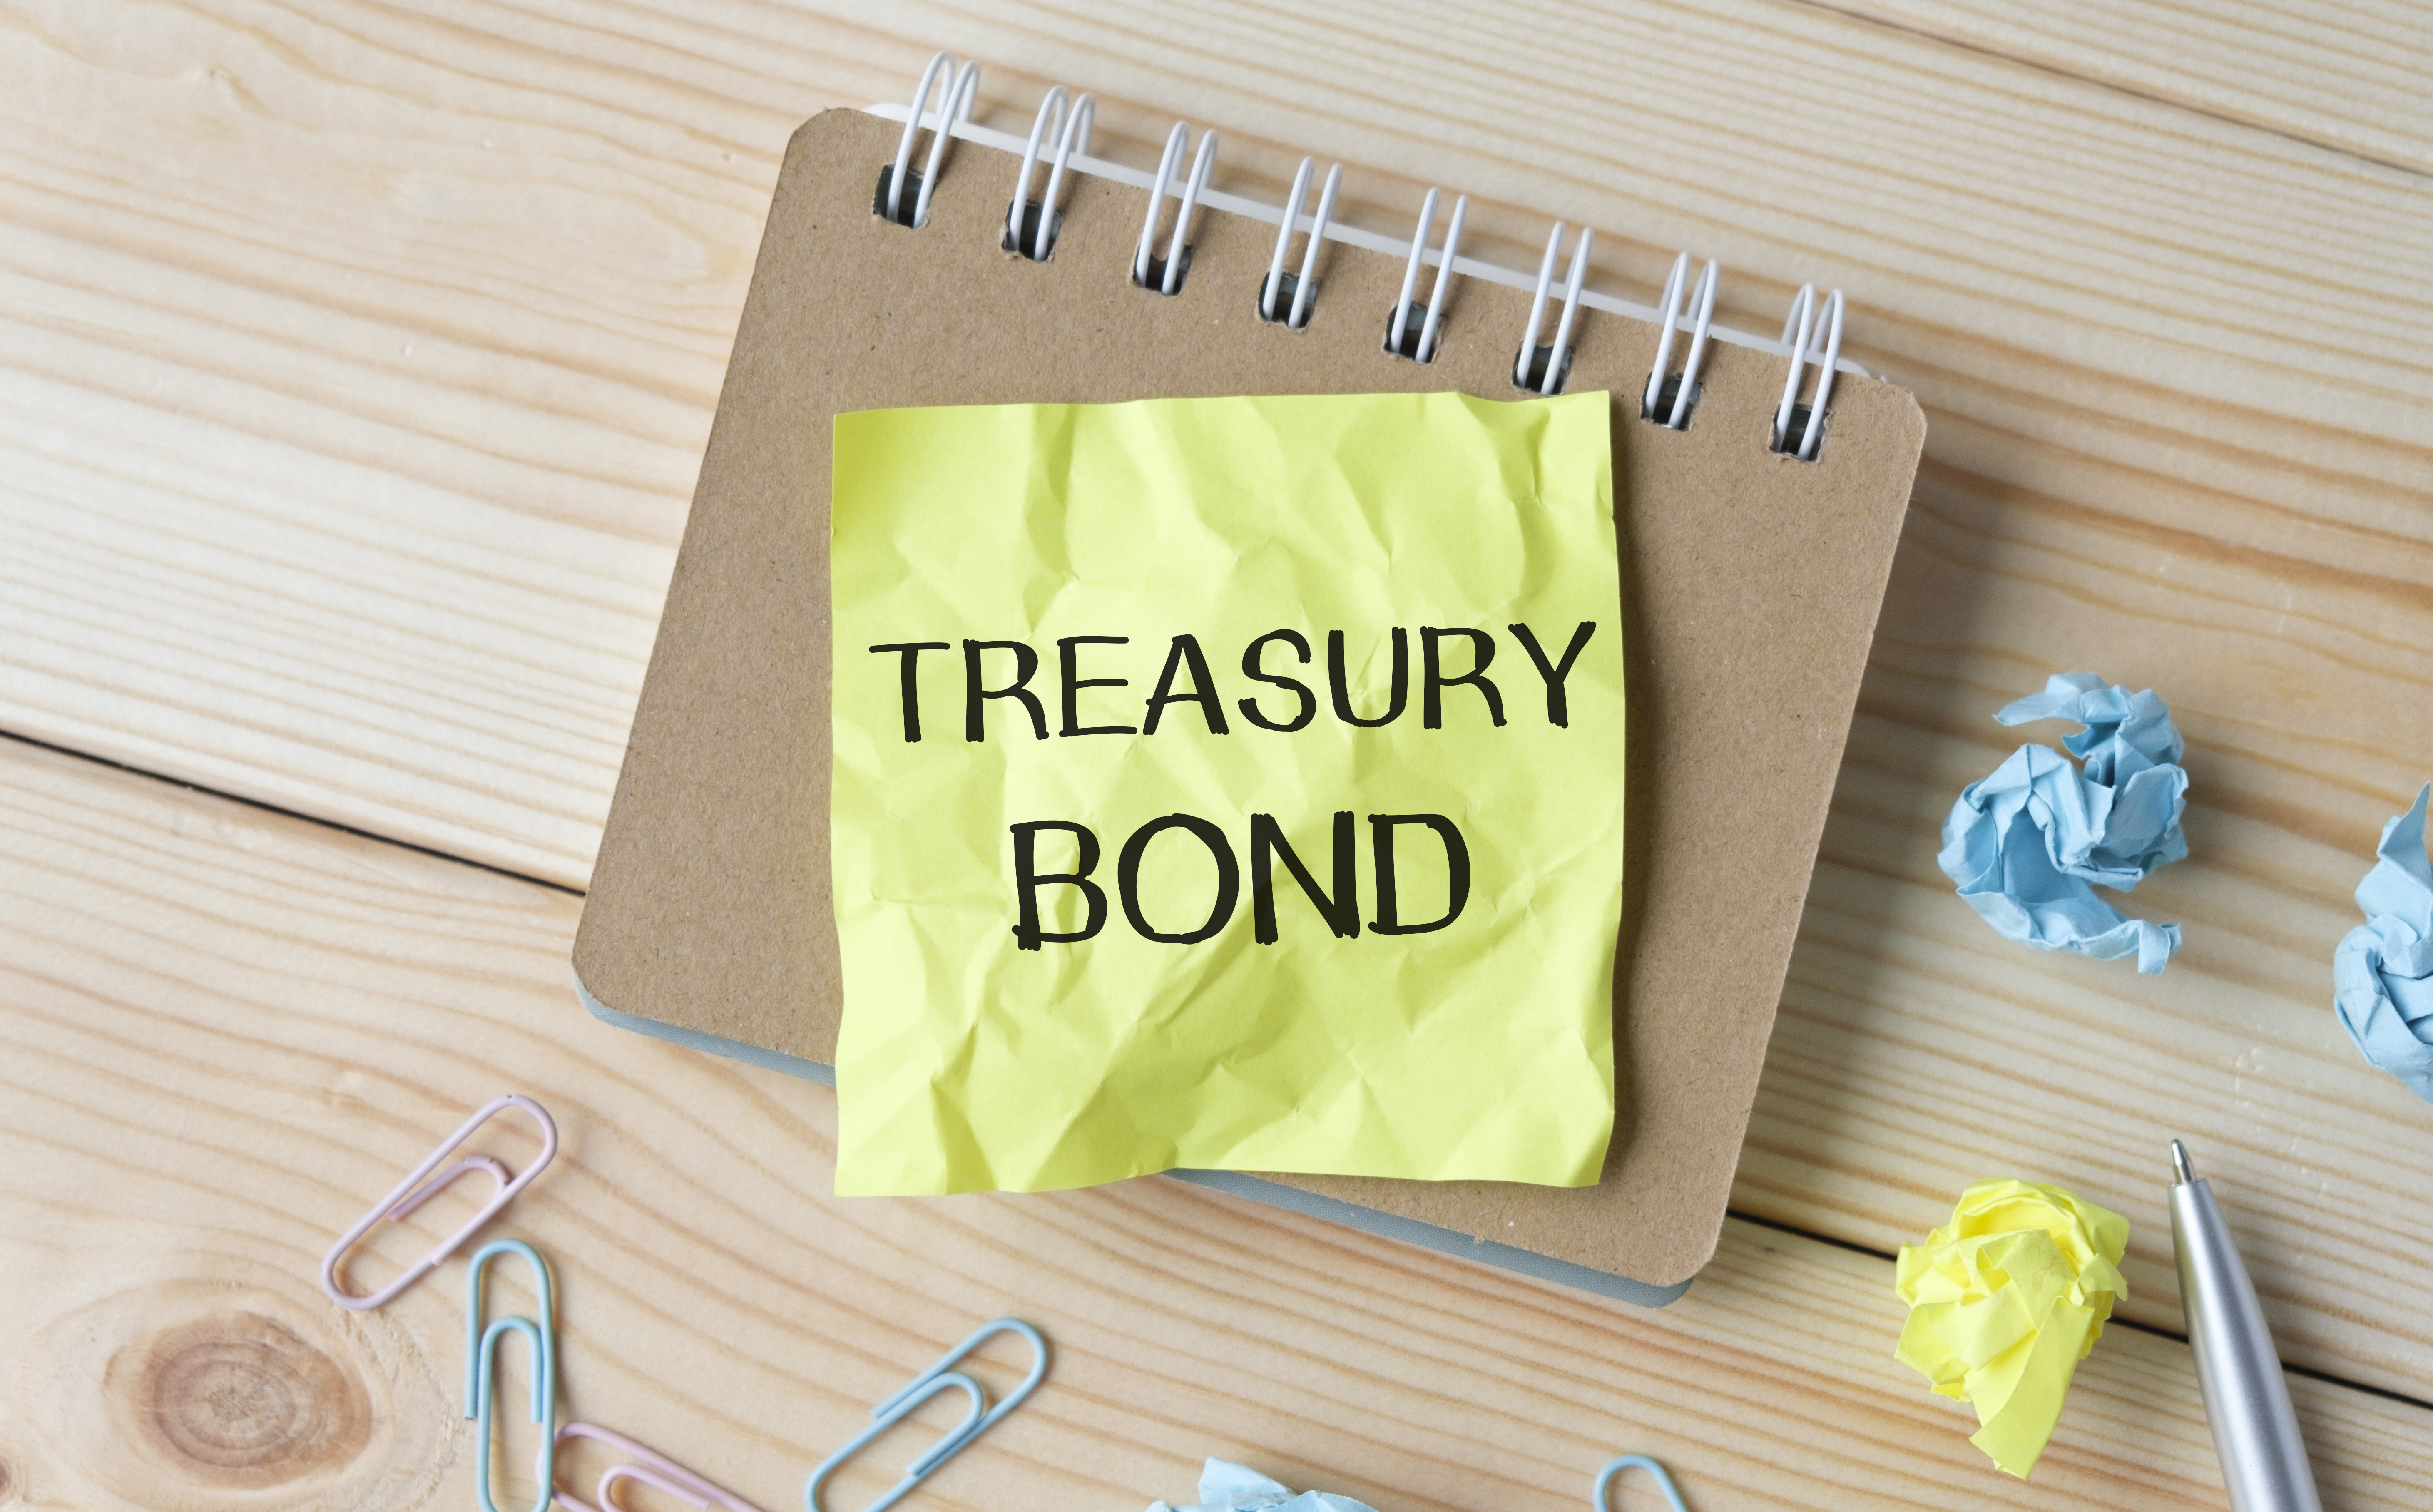 TREASURY BOND text on notepad. Business concept.